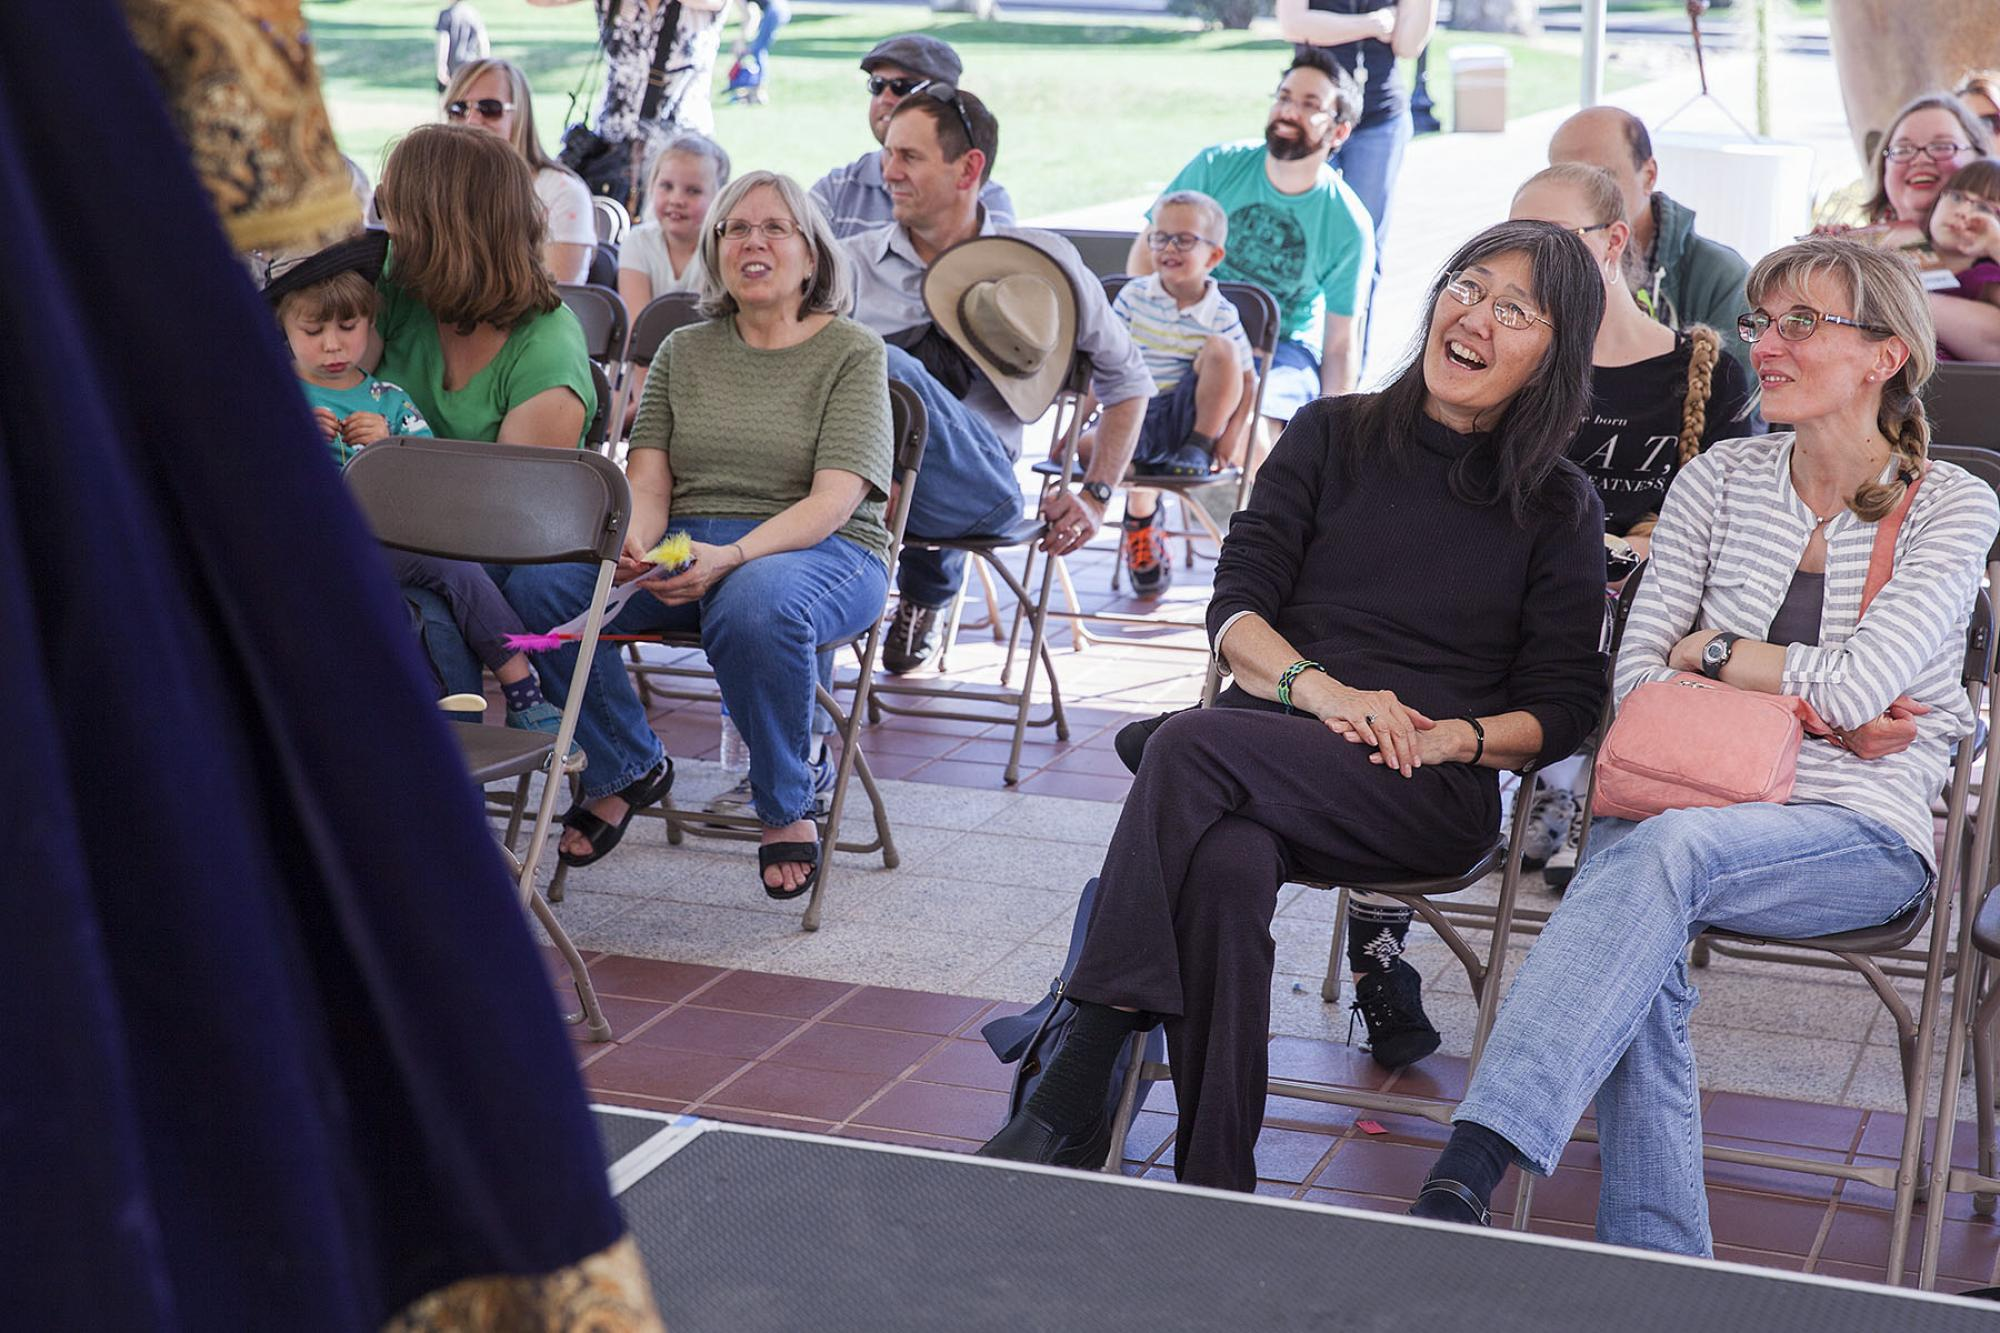 Carolyn Classen, website editor for the Southern Arizona Japanese Cultural Coalition, and her friend Stefanie Stine serve as judges during the Renaissance Festival Improv game session at Saturday With Shakespeare at the Arizona State Museum.